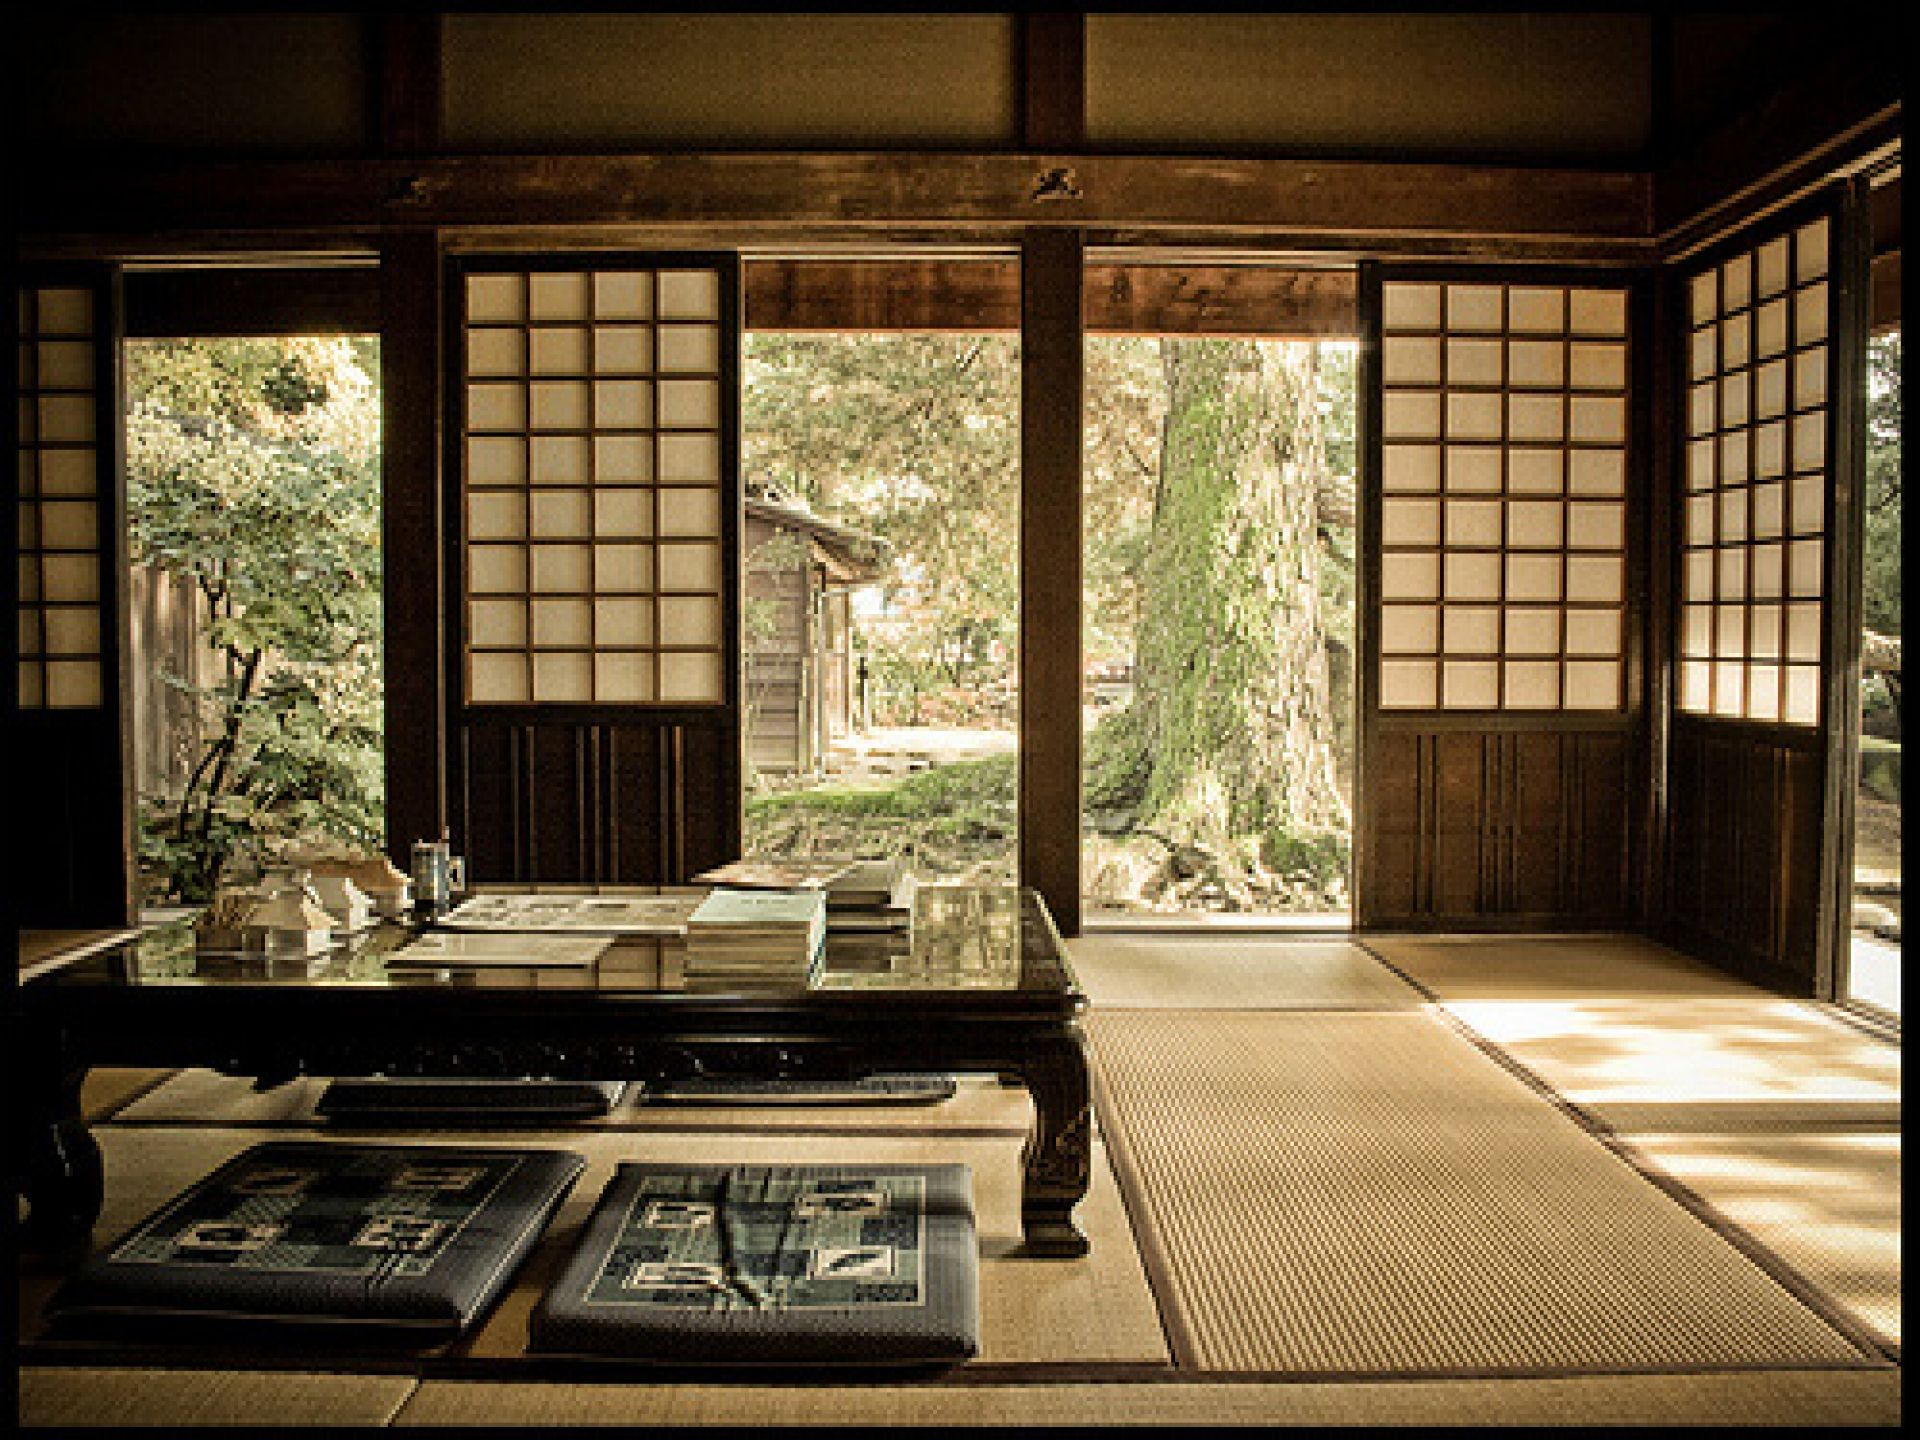 Traditional Japanese Home Design traditional japanese house design japanese house design a trendy option of living space whomestudiocom magazine online home designs Simple Bedroom Designs For Small Rooms Within Small House Design Traditional Japanese